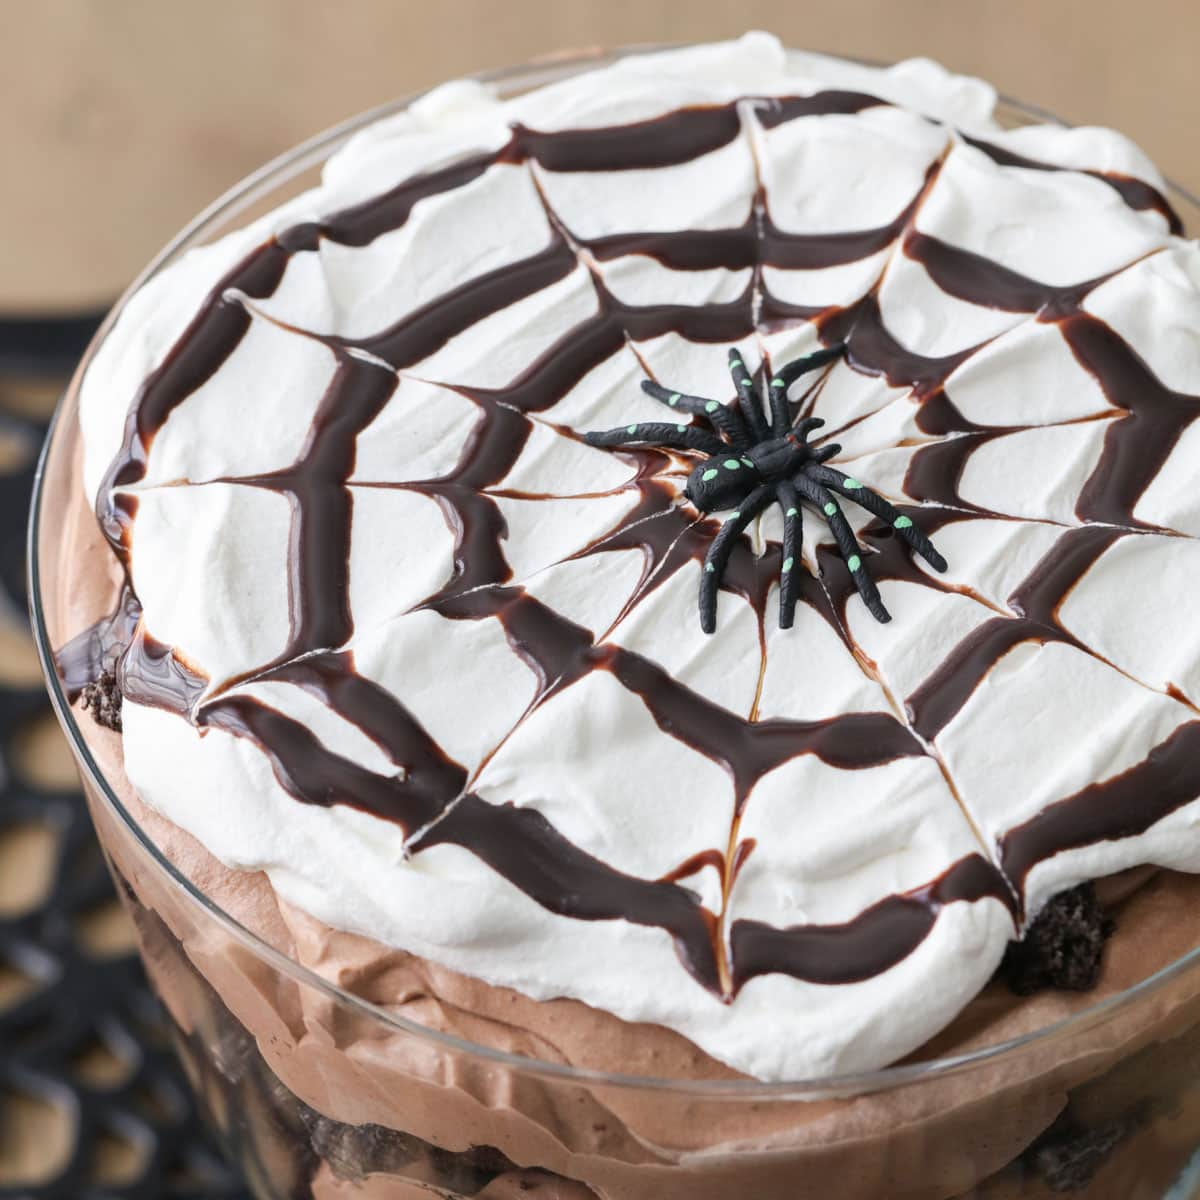 chocolate spider web on whipped cream